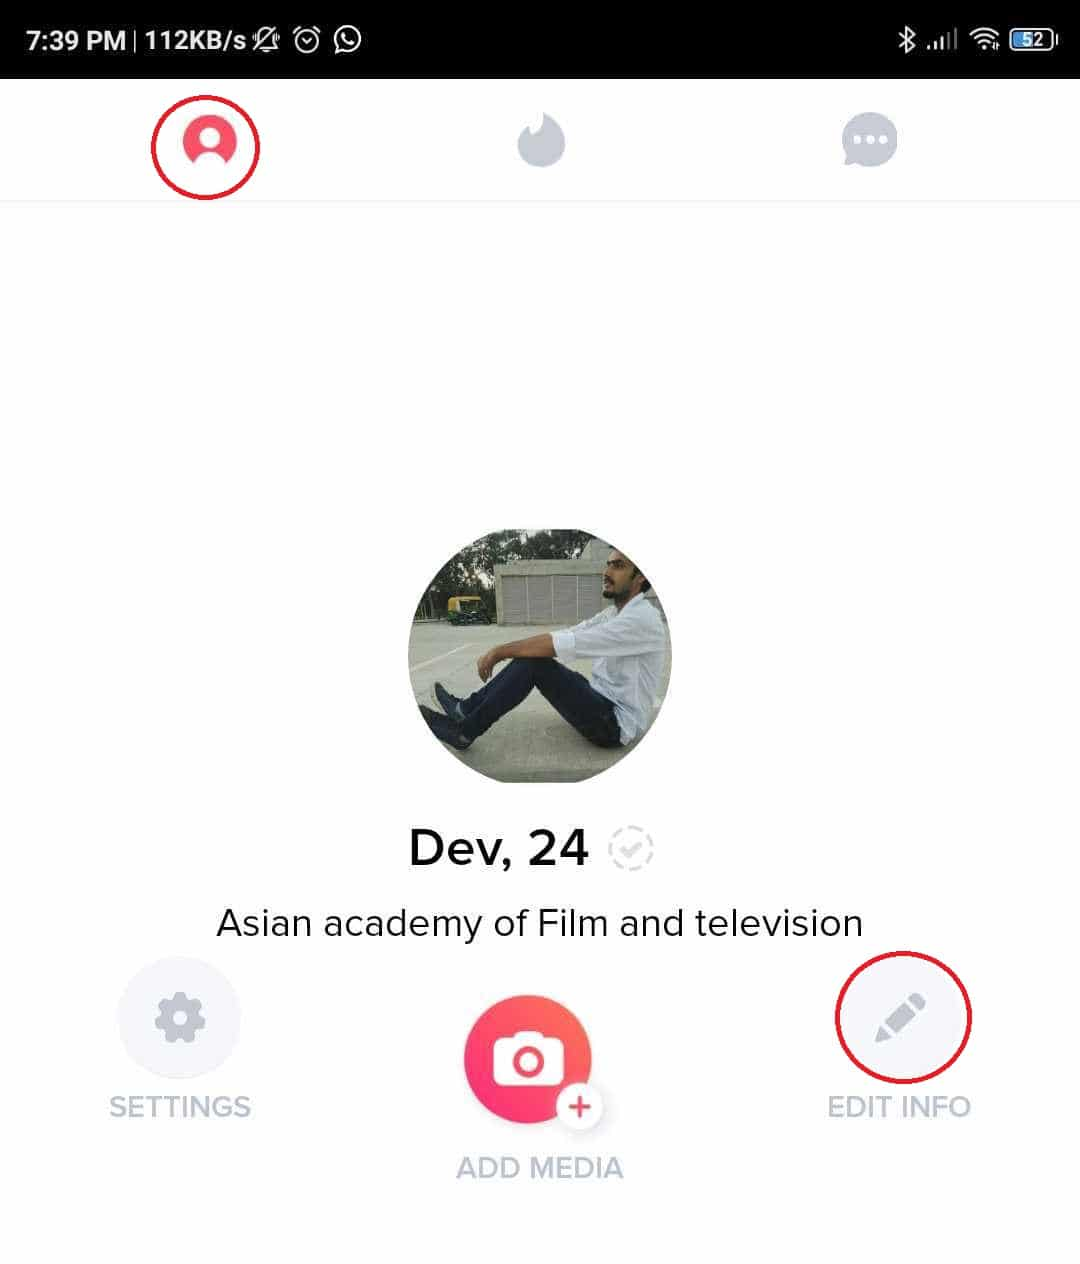 Go to profile icon and tap on edit info option | Change Your Name Or Gender On Tinder